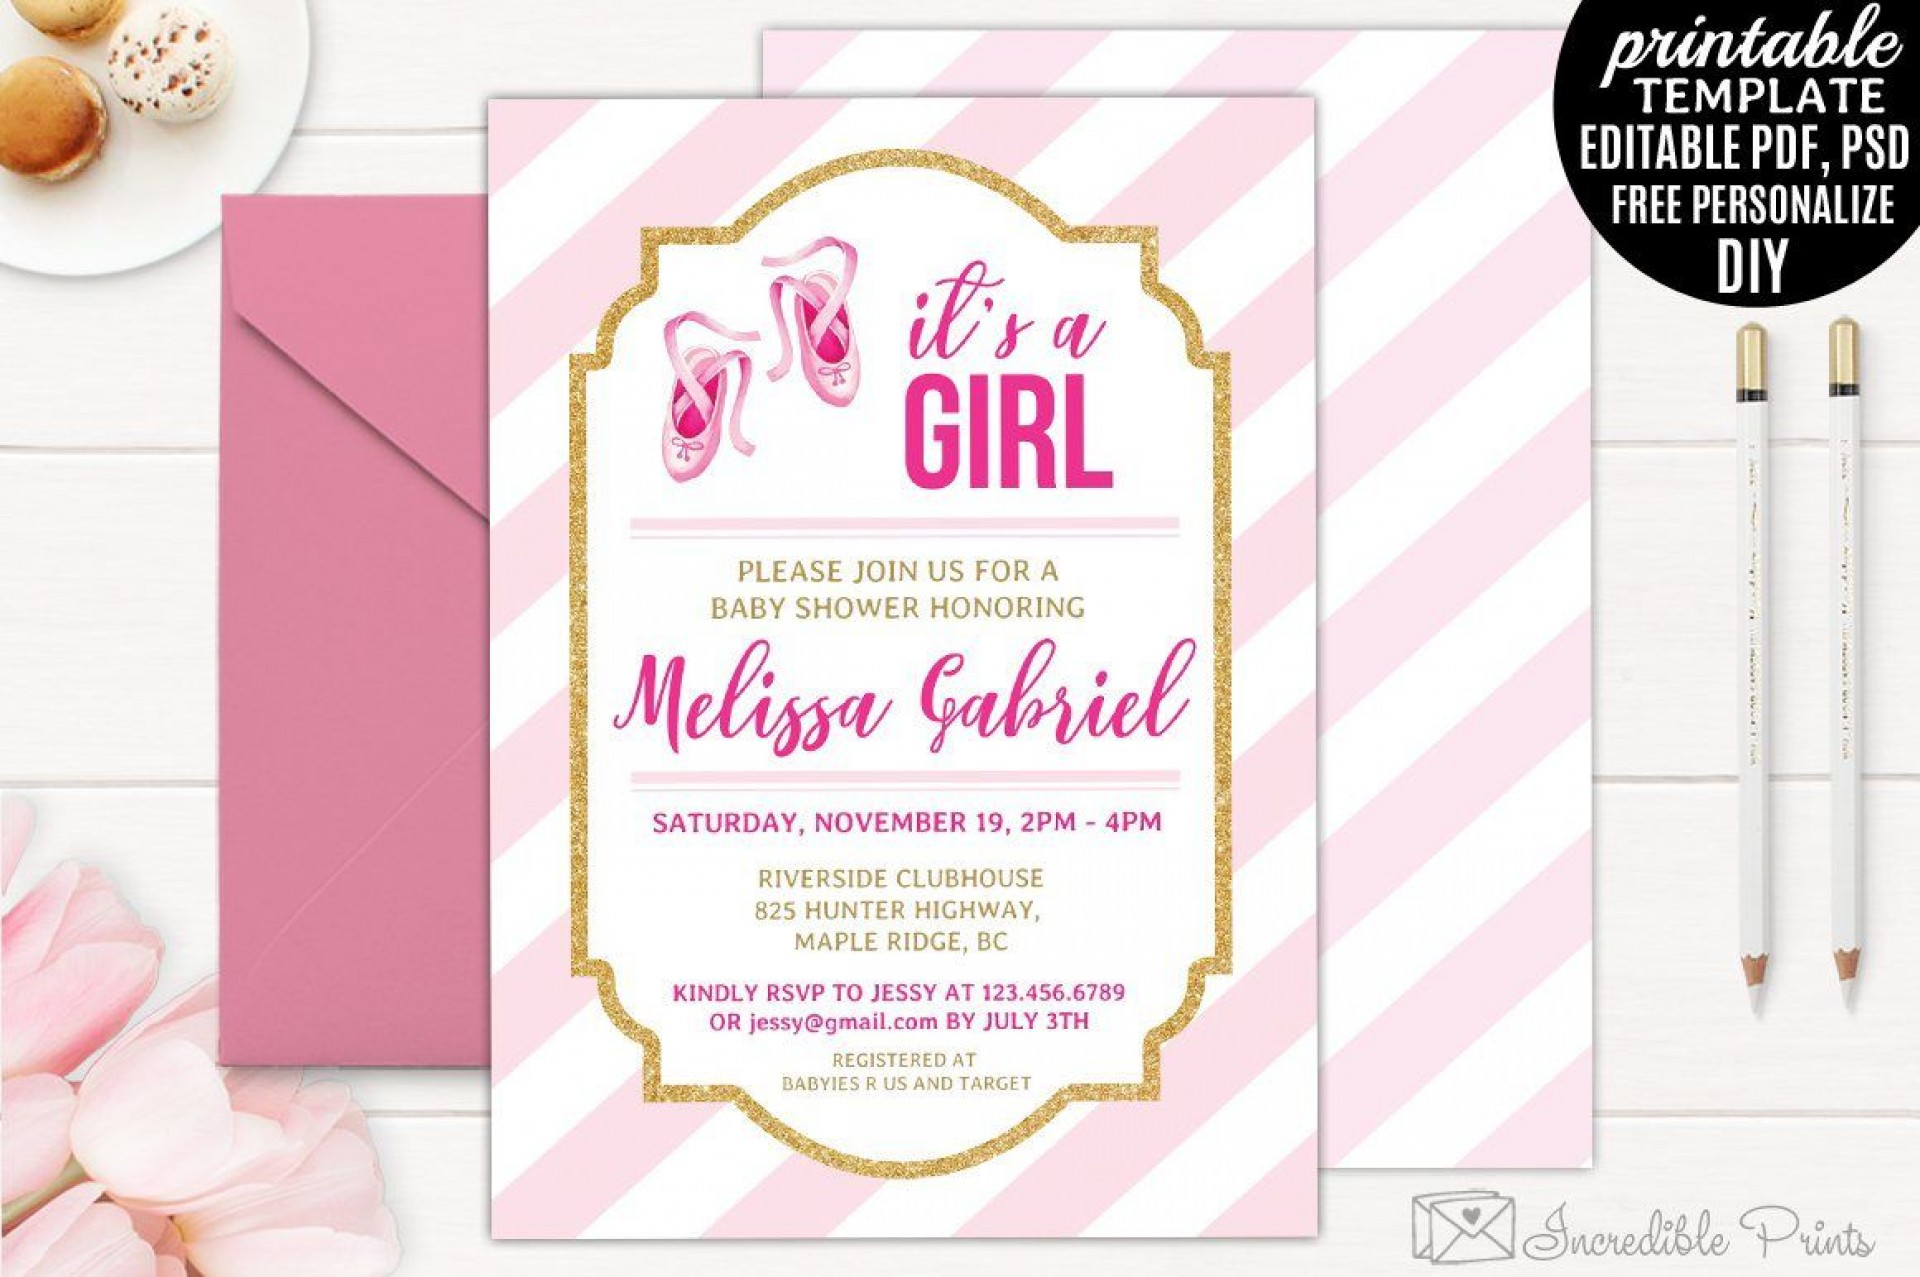 005 Remarkable Diy Baby Shower Invitation Template Highest Clarity  Templates Diaper Free1920